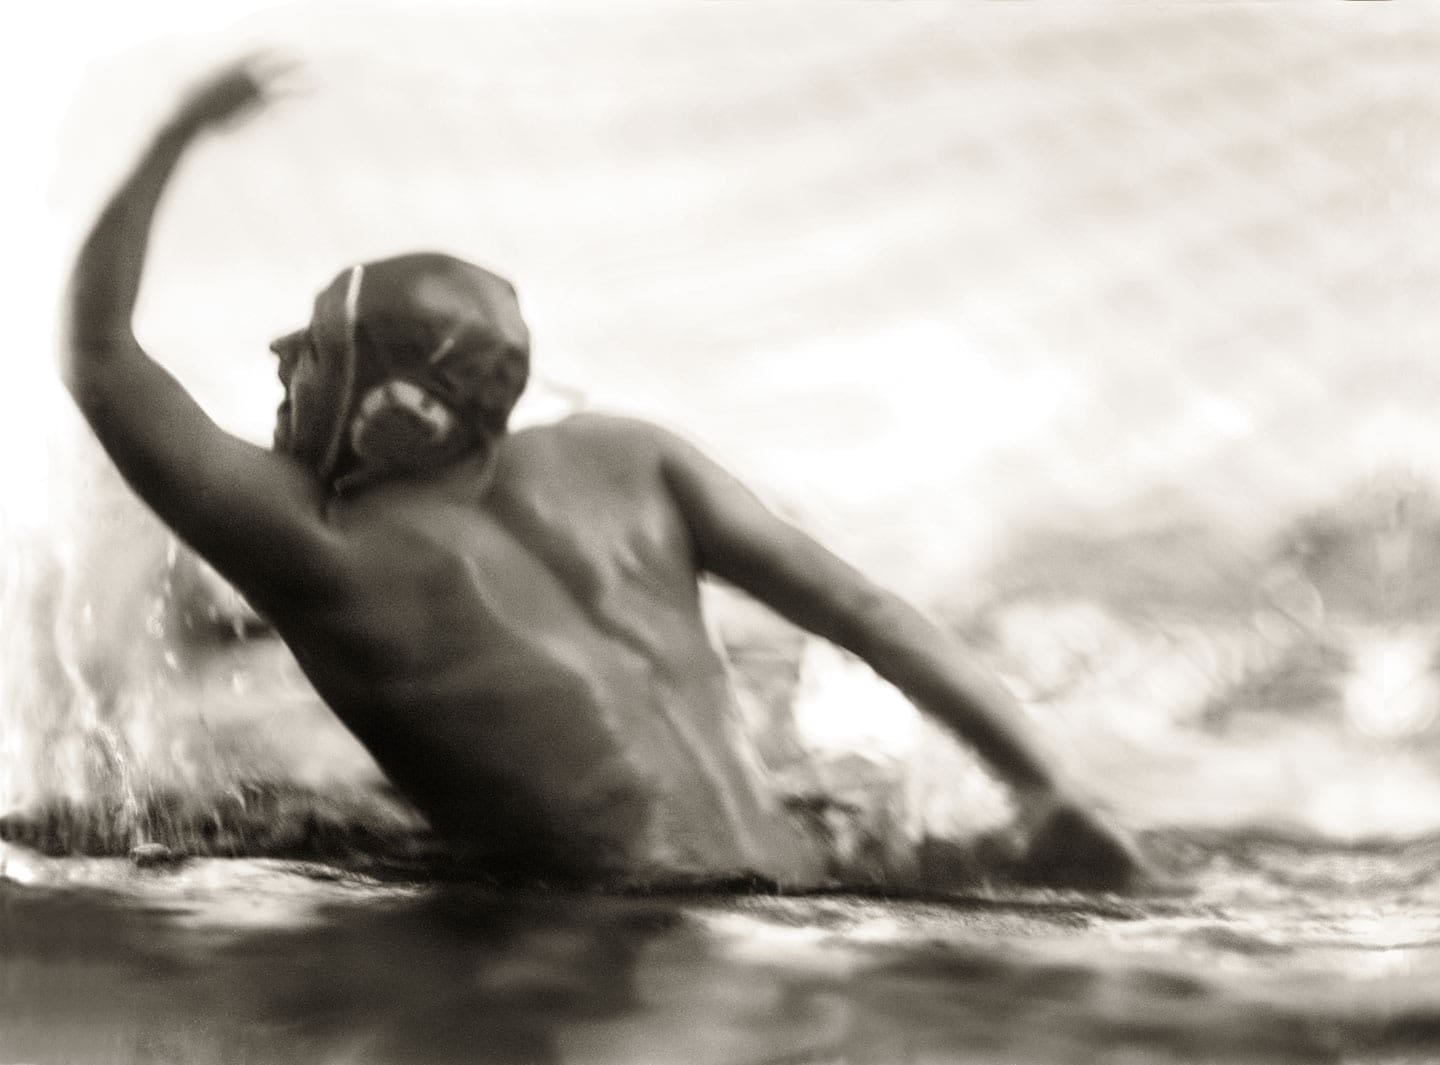 Rod Mclean - waterpolo